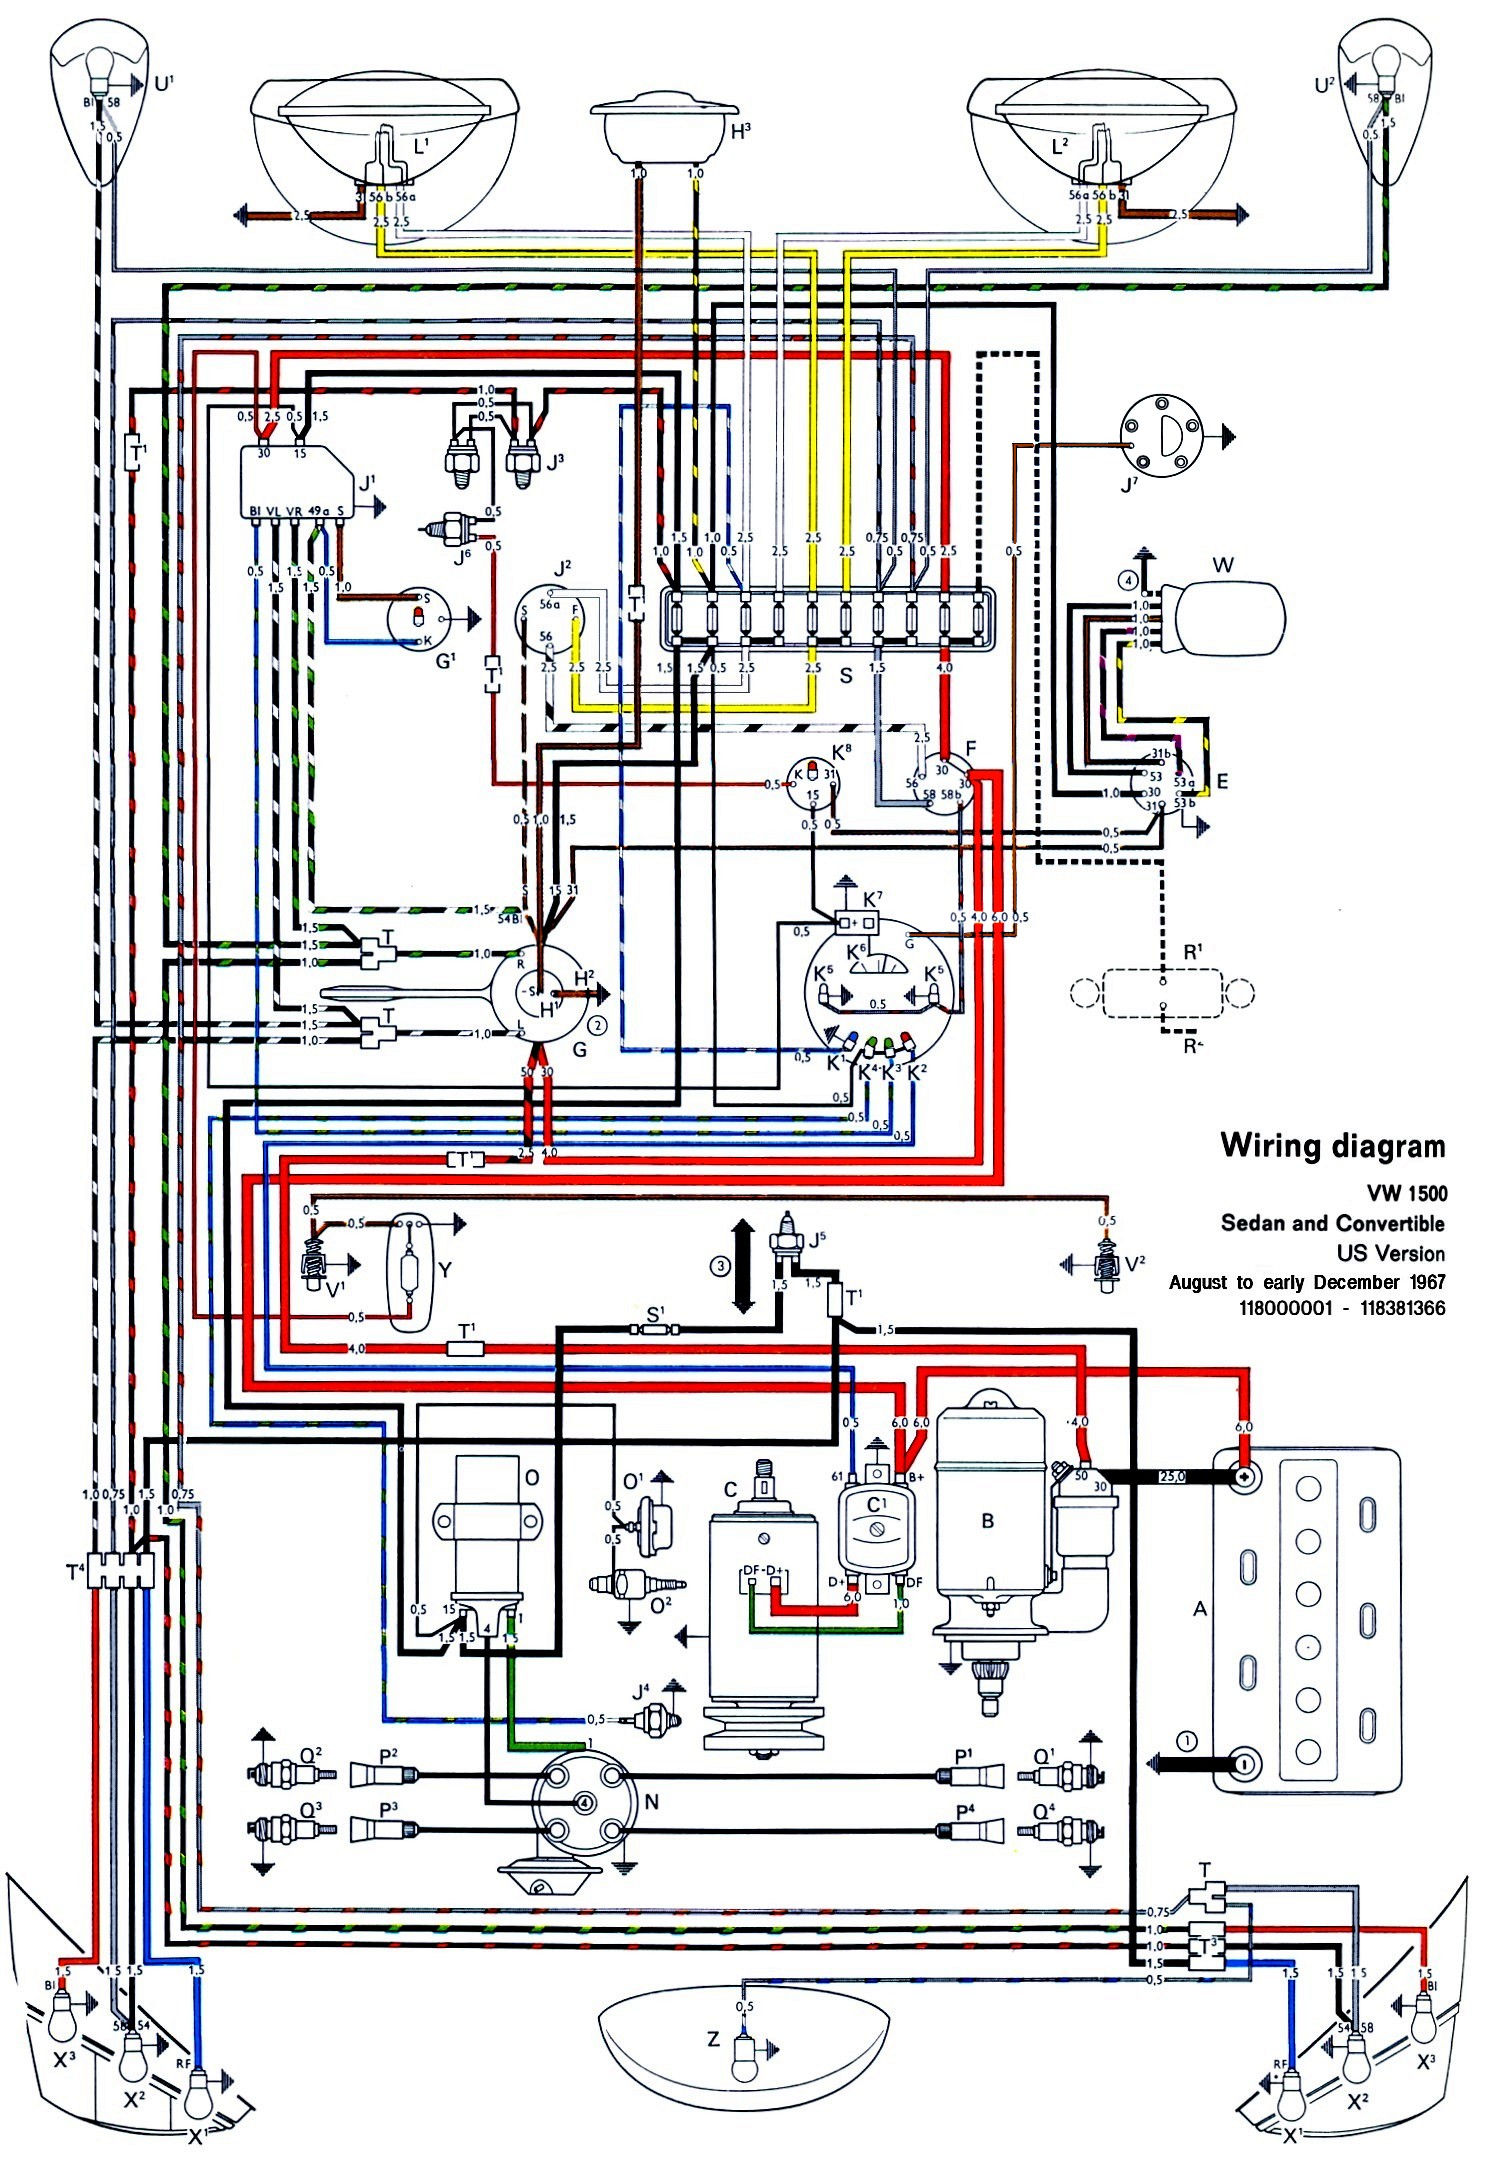 bug_68_early_usa 69 vw bug wiring diagram 1970 vw beetle wiring \u2022 wiring diagrams 1973 super beetle wiring harness at panicattacktreatment.co